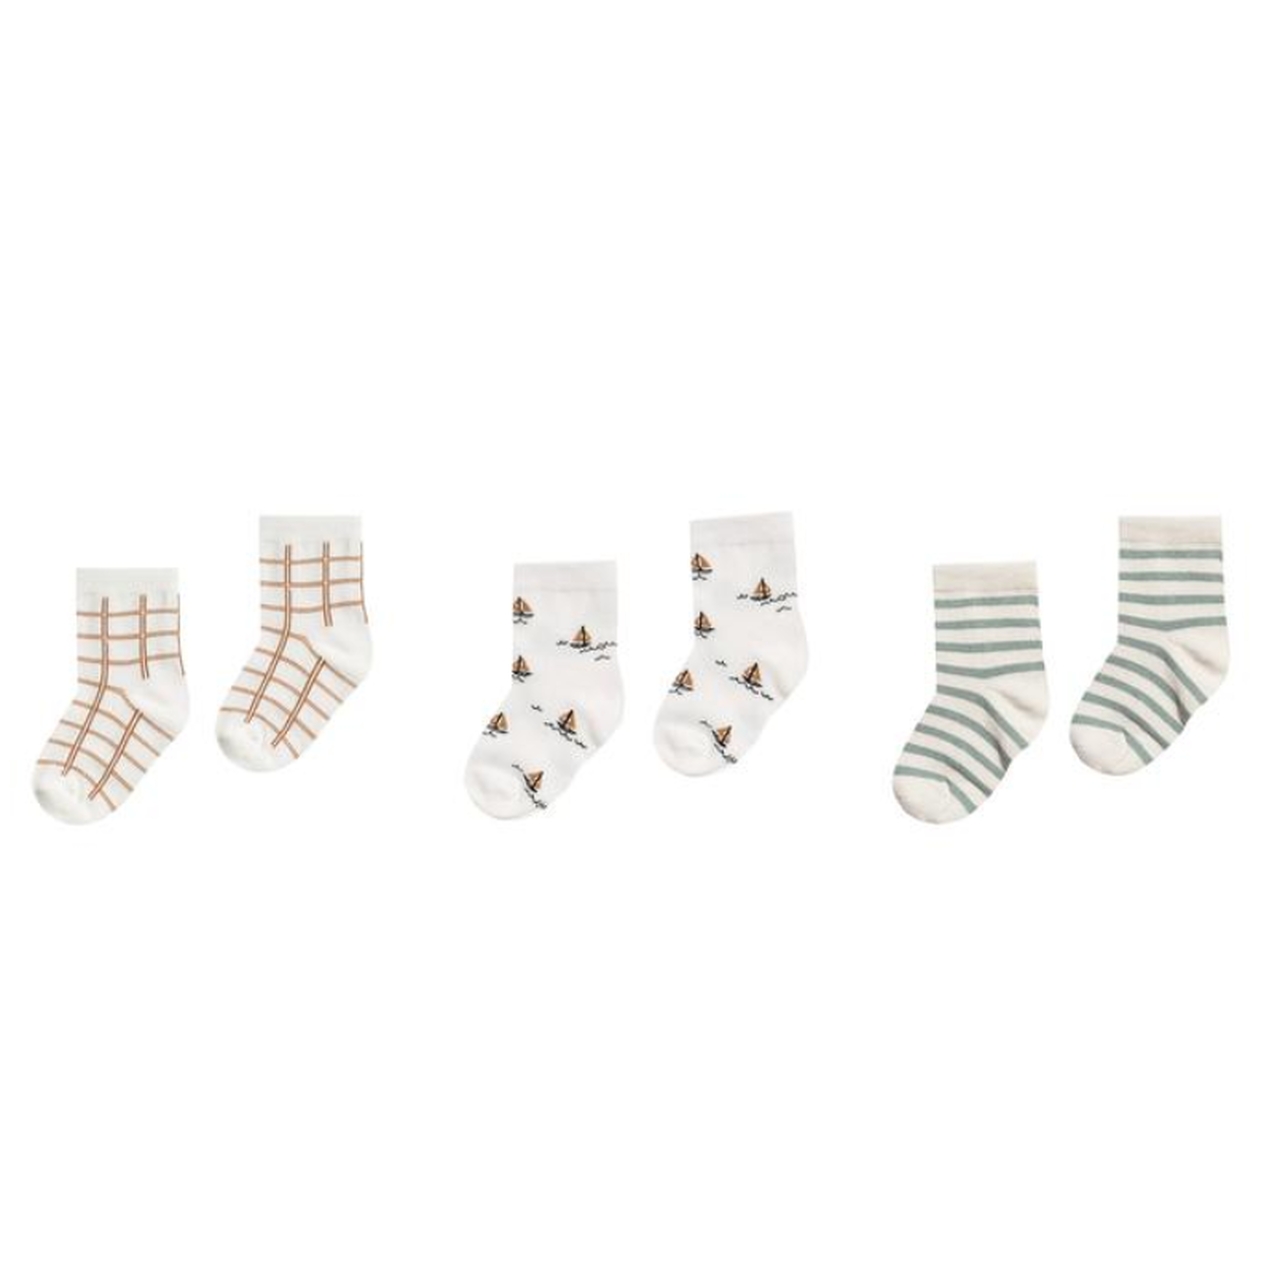 Rylee + Cru Rylee + Cru Ankle Sock Set - Bronze Grid/Sailboat/Sea Stripe